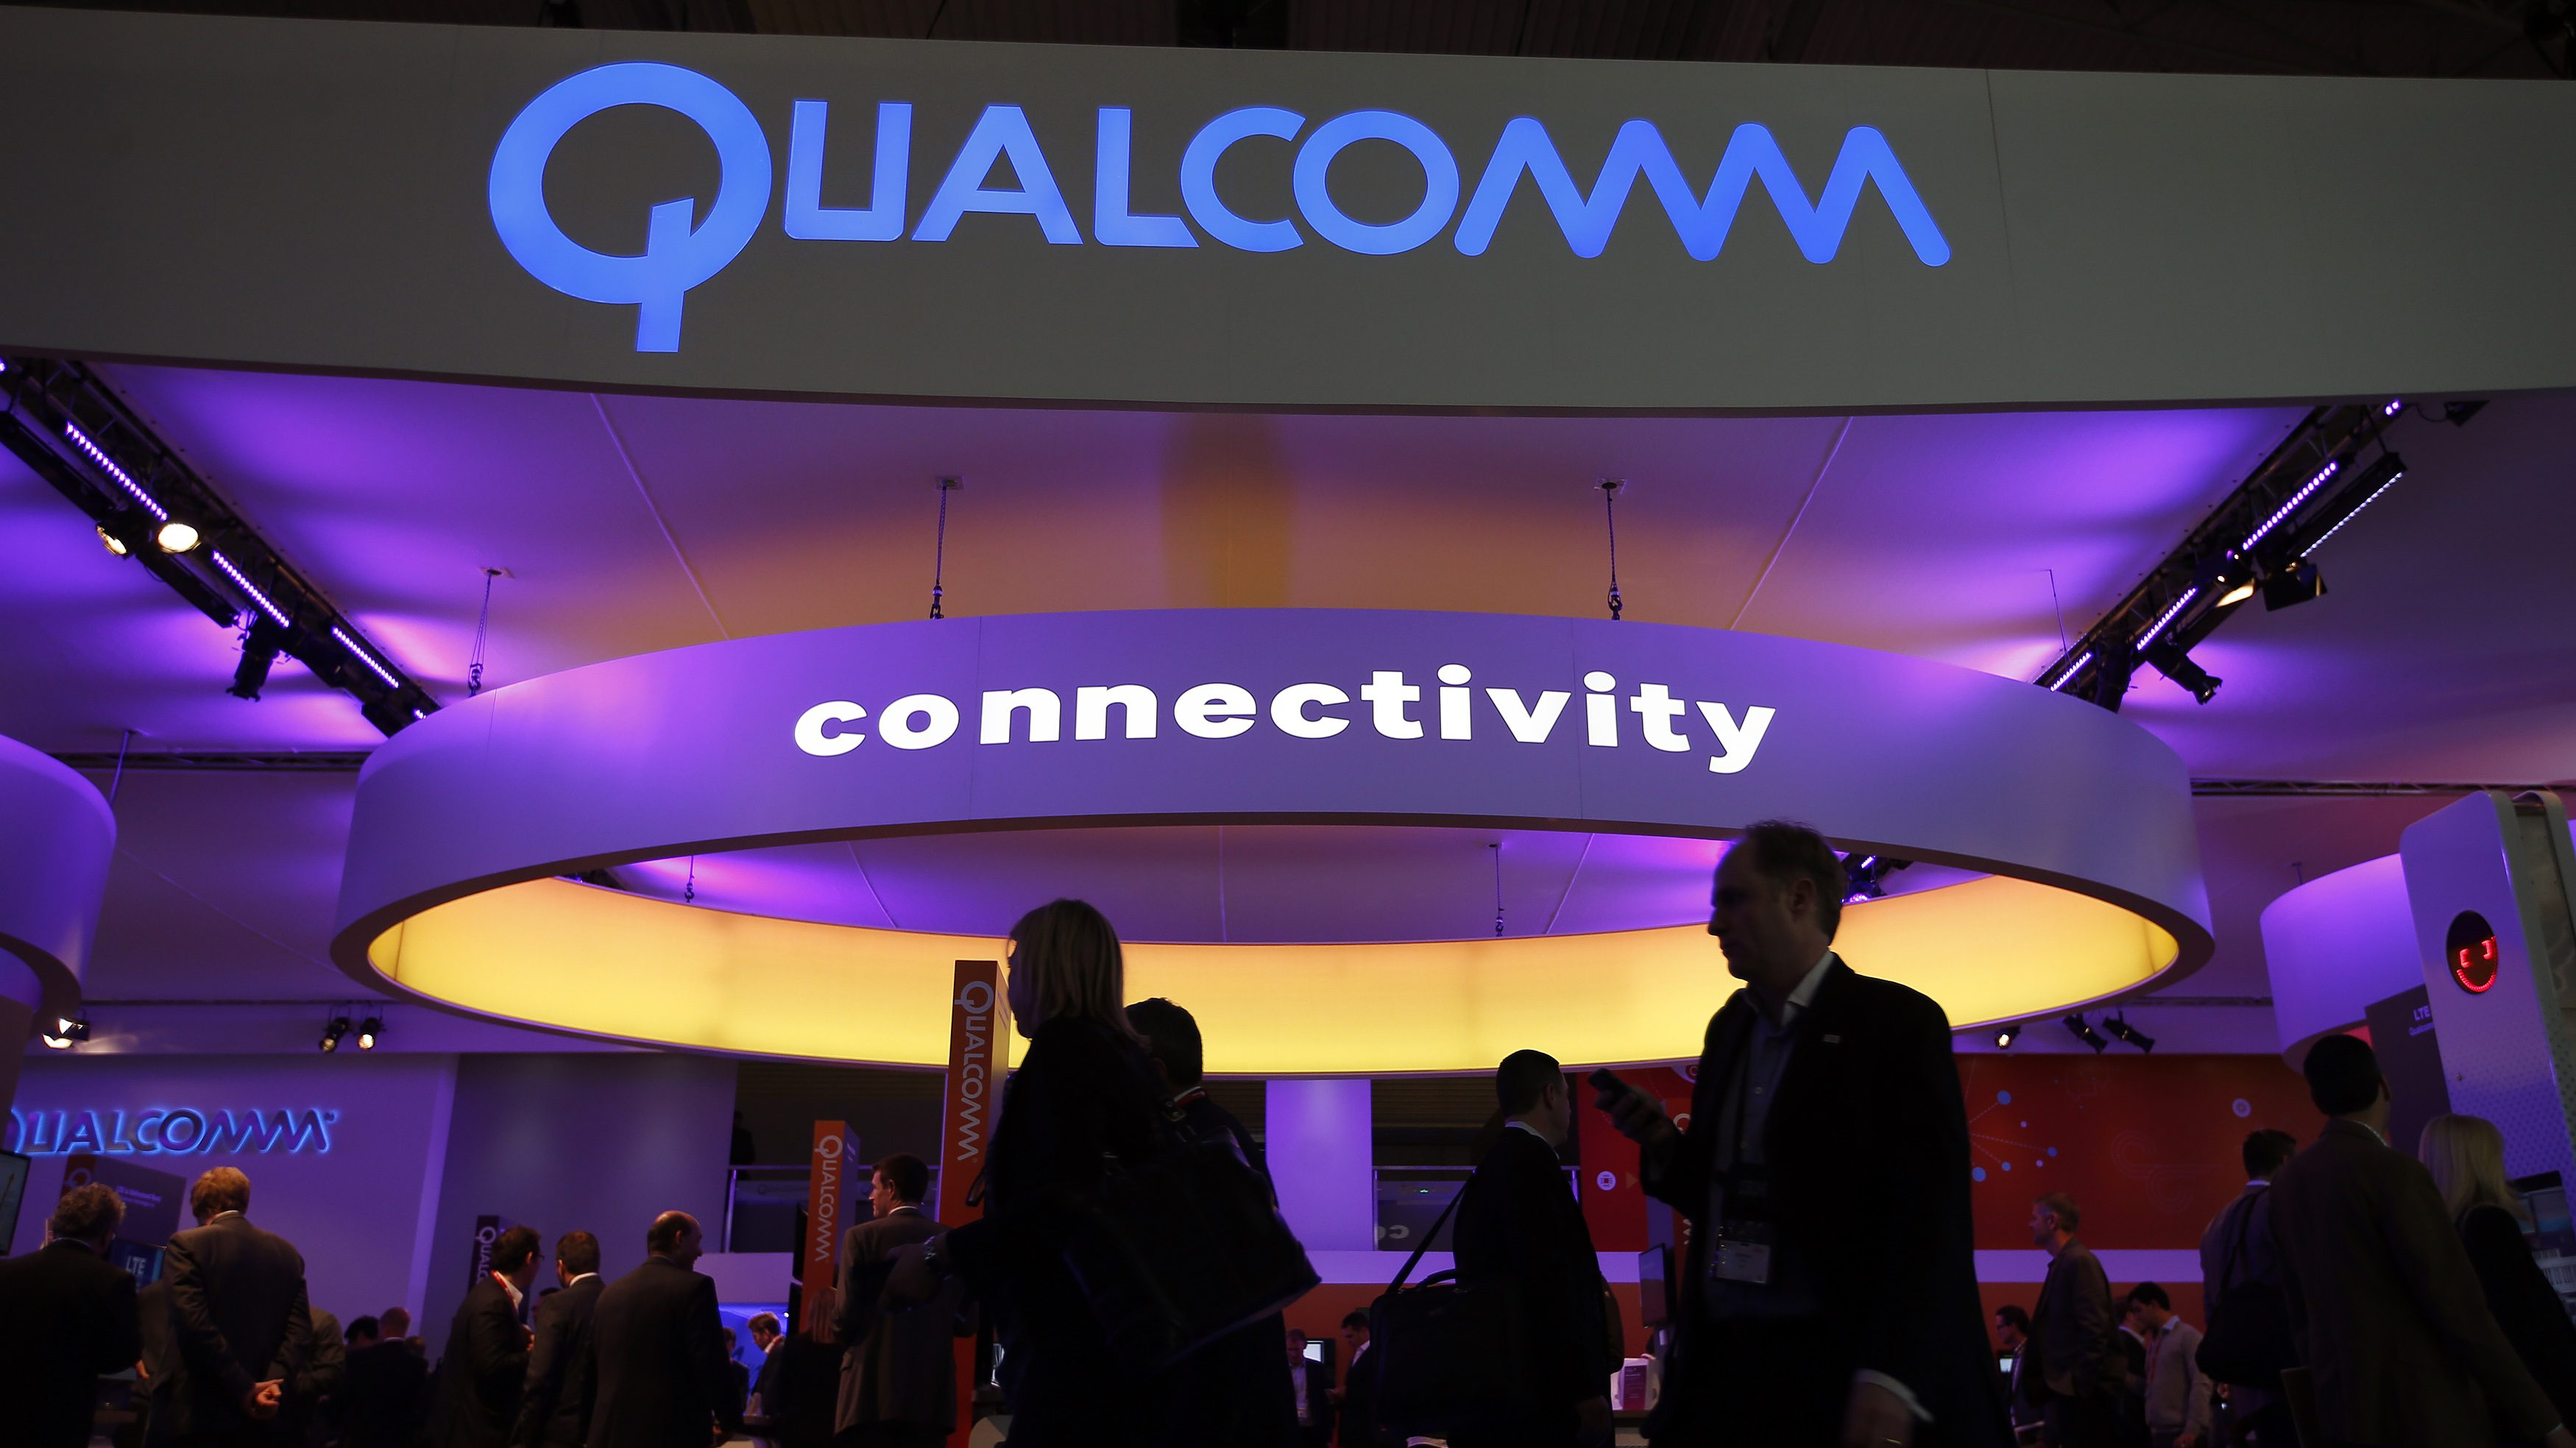 Visitors walk past the Qualcomm stand at the Mobile World Congress in Barcelona, February 24, 2014. The world's biggest mobile brands will jostle for the spotlight at the premier mobile industry event this week in Spain, but away from the glitzy displays chipmakers will be preoccupied with China, the largest mobile market on the planet.